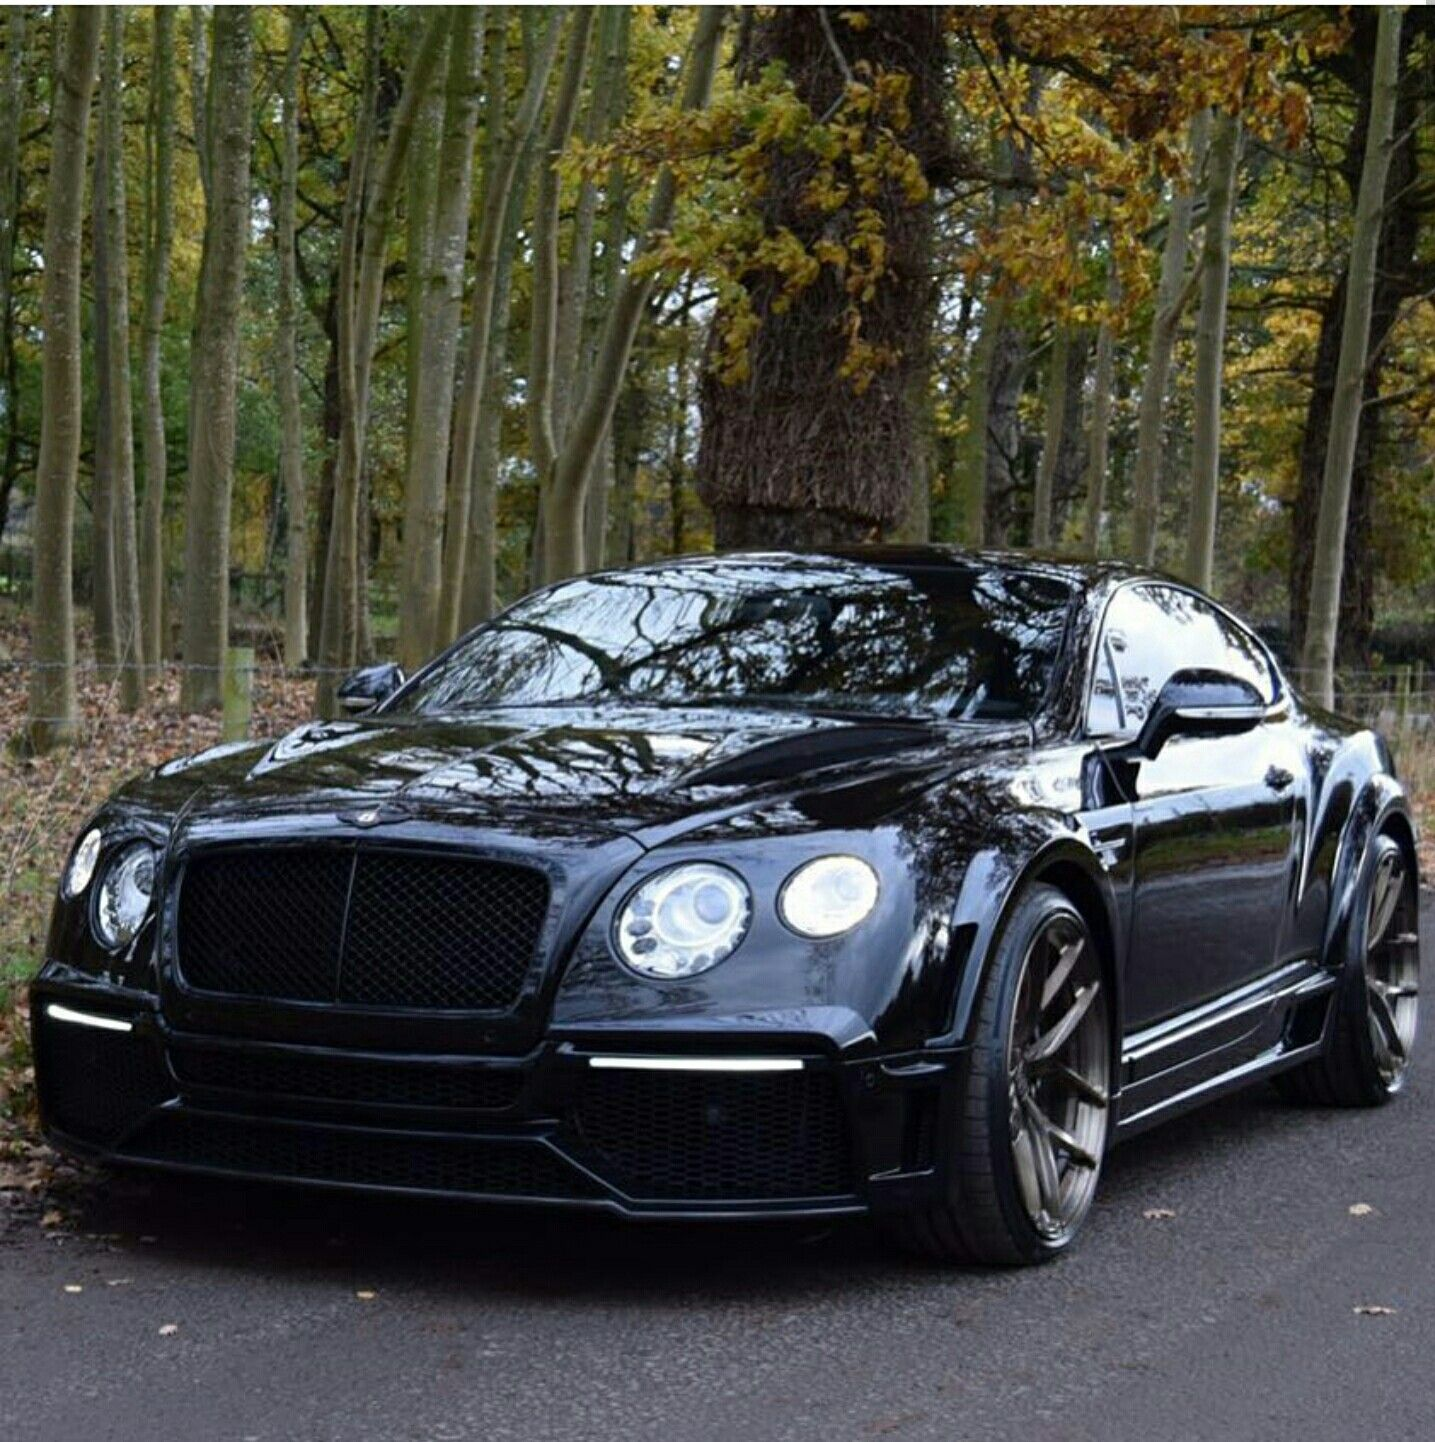 Bentley Sport Coupe Price: All Black Bentley Coupe